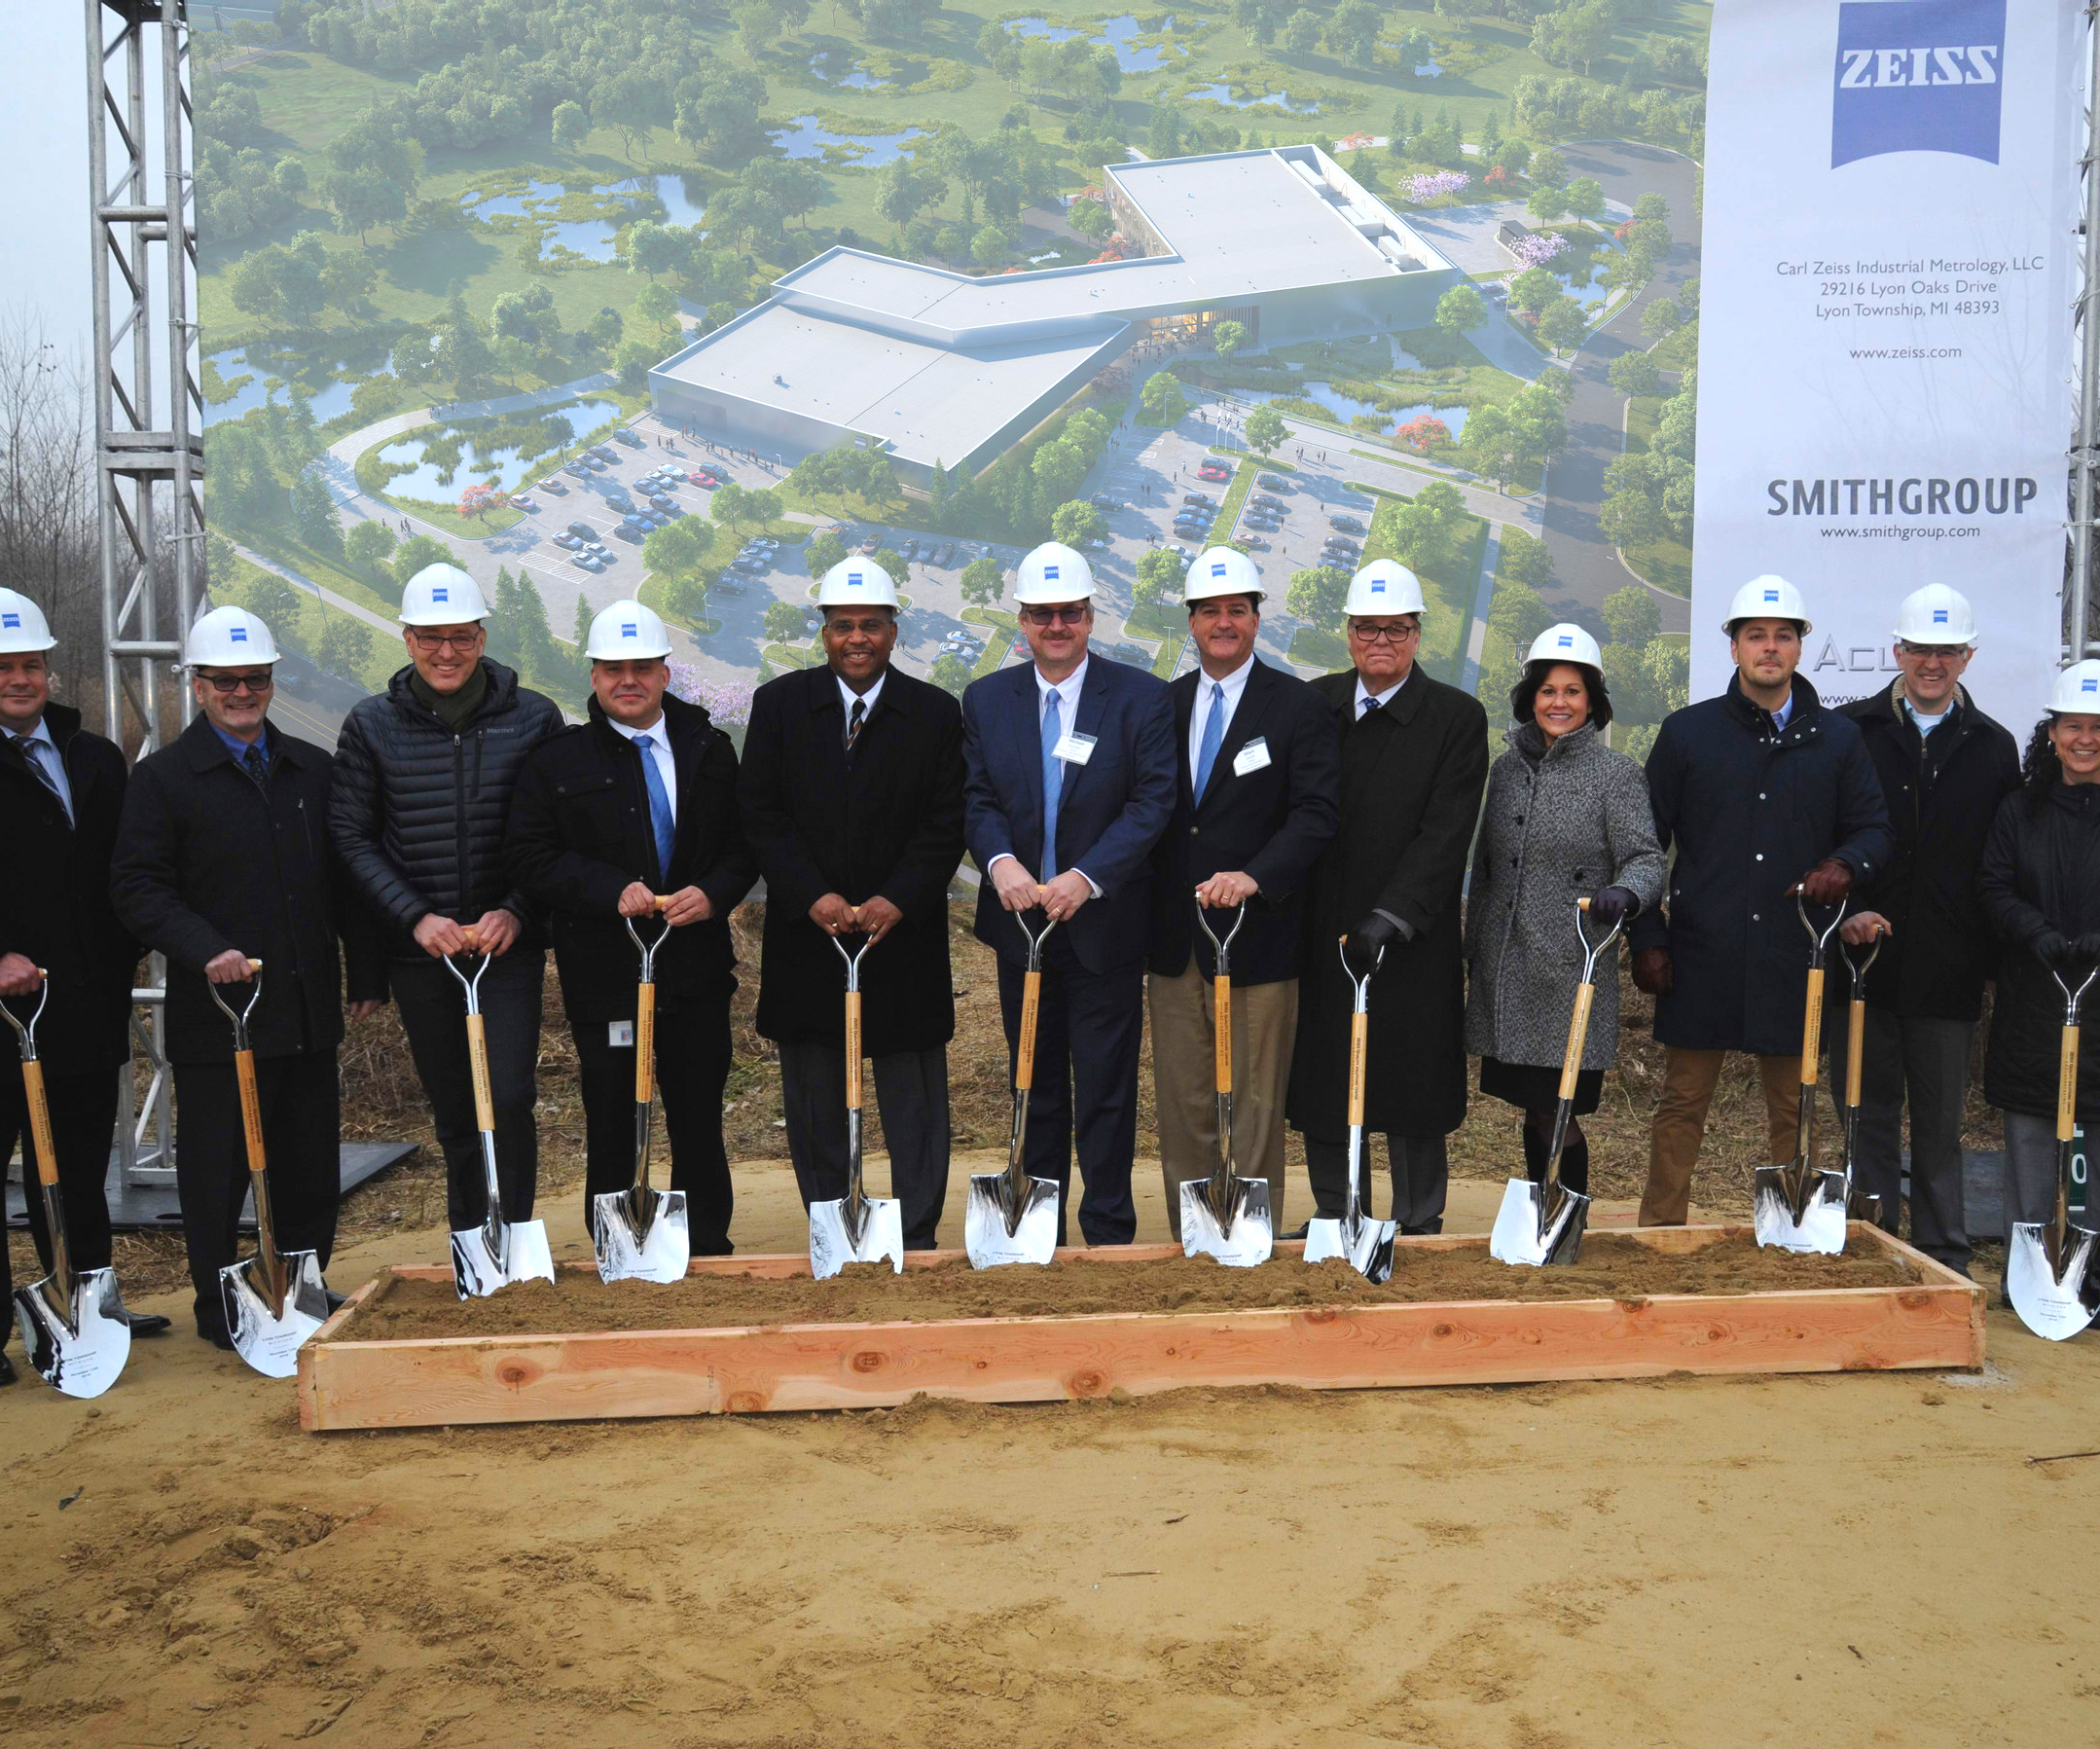 Zeiss facility groundbreaking